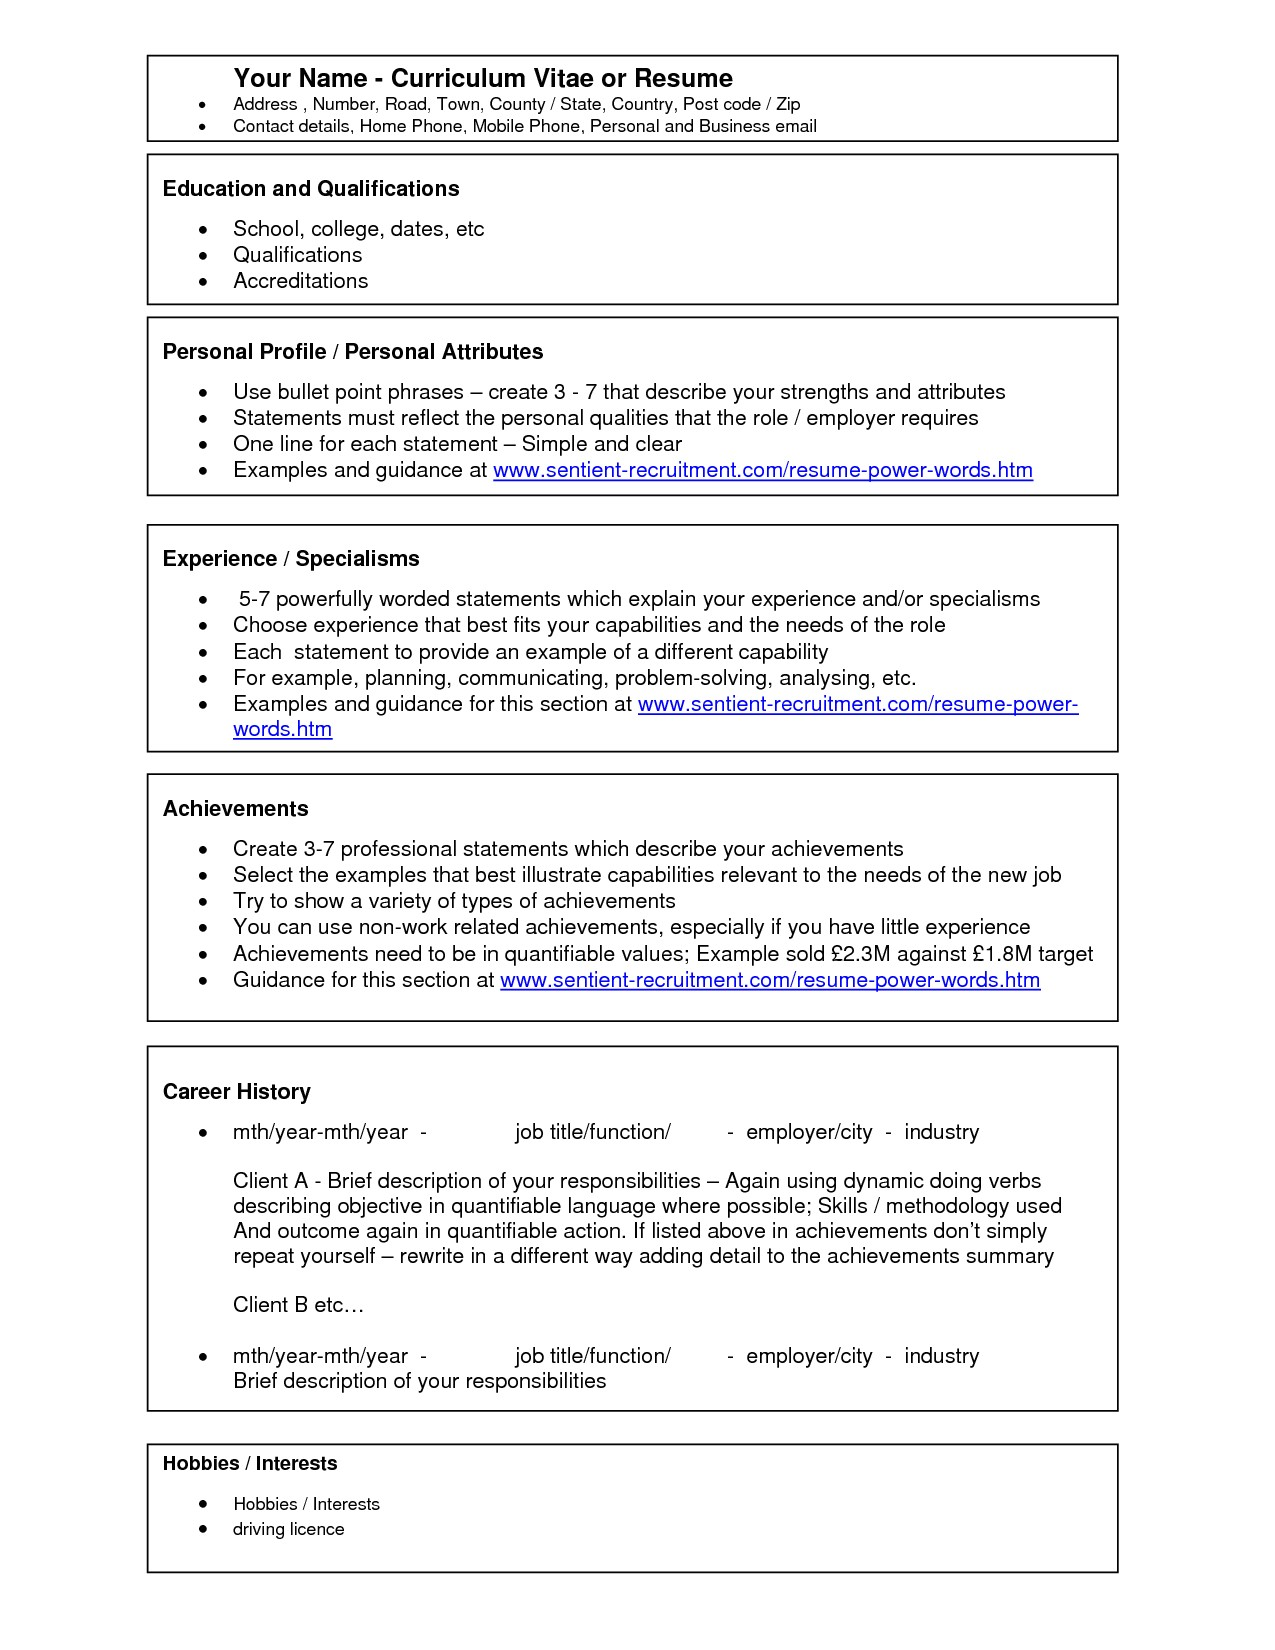 how to use resume template in word 2010 free printable templates download microsoft template